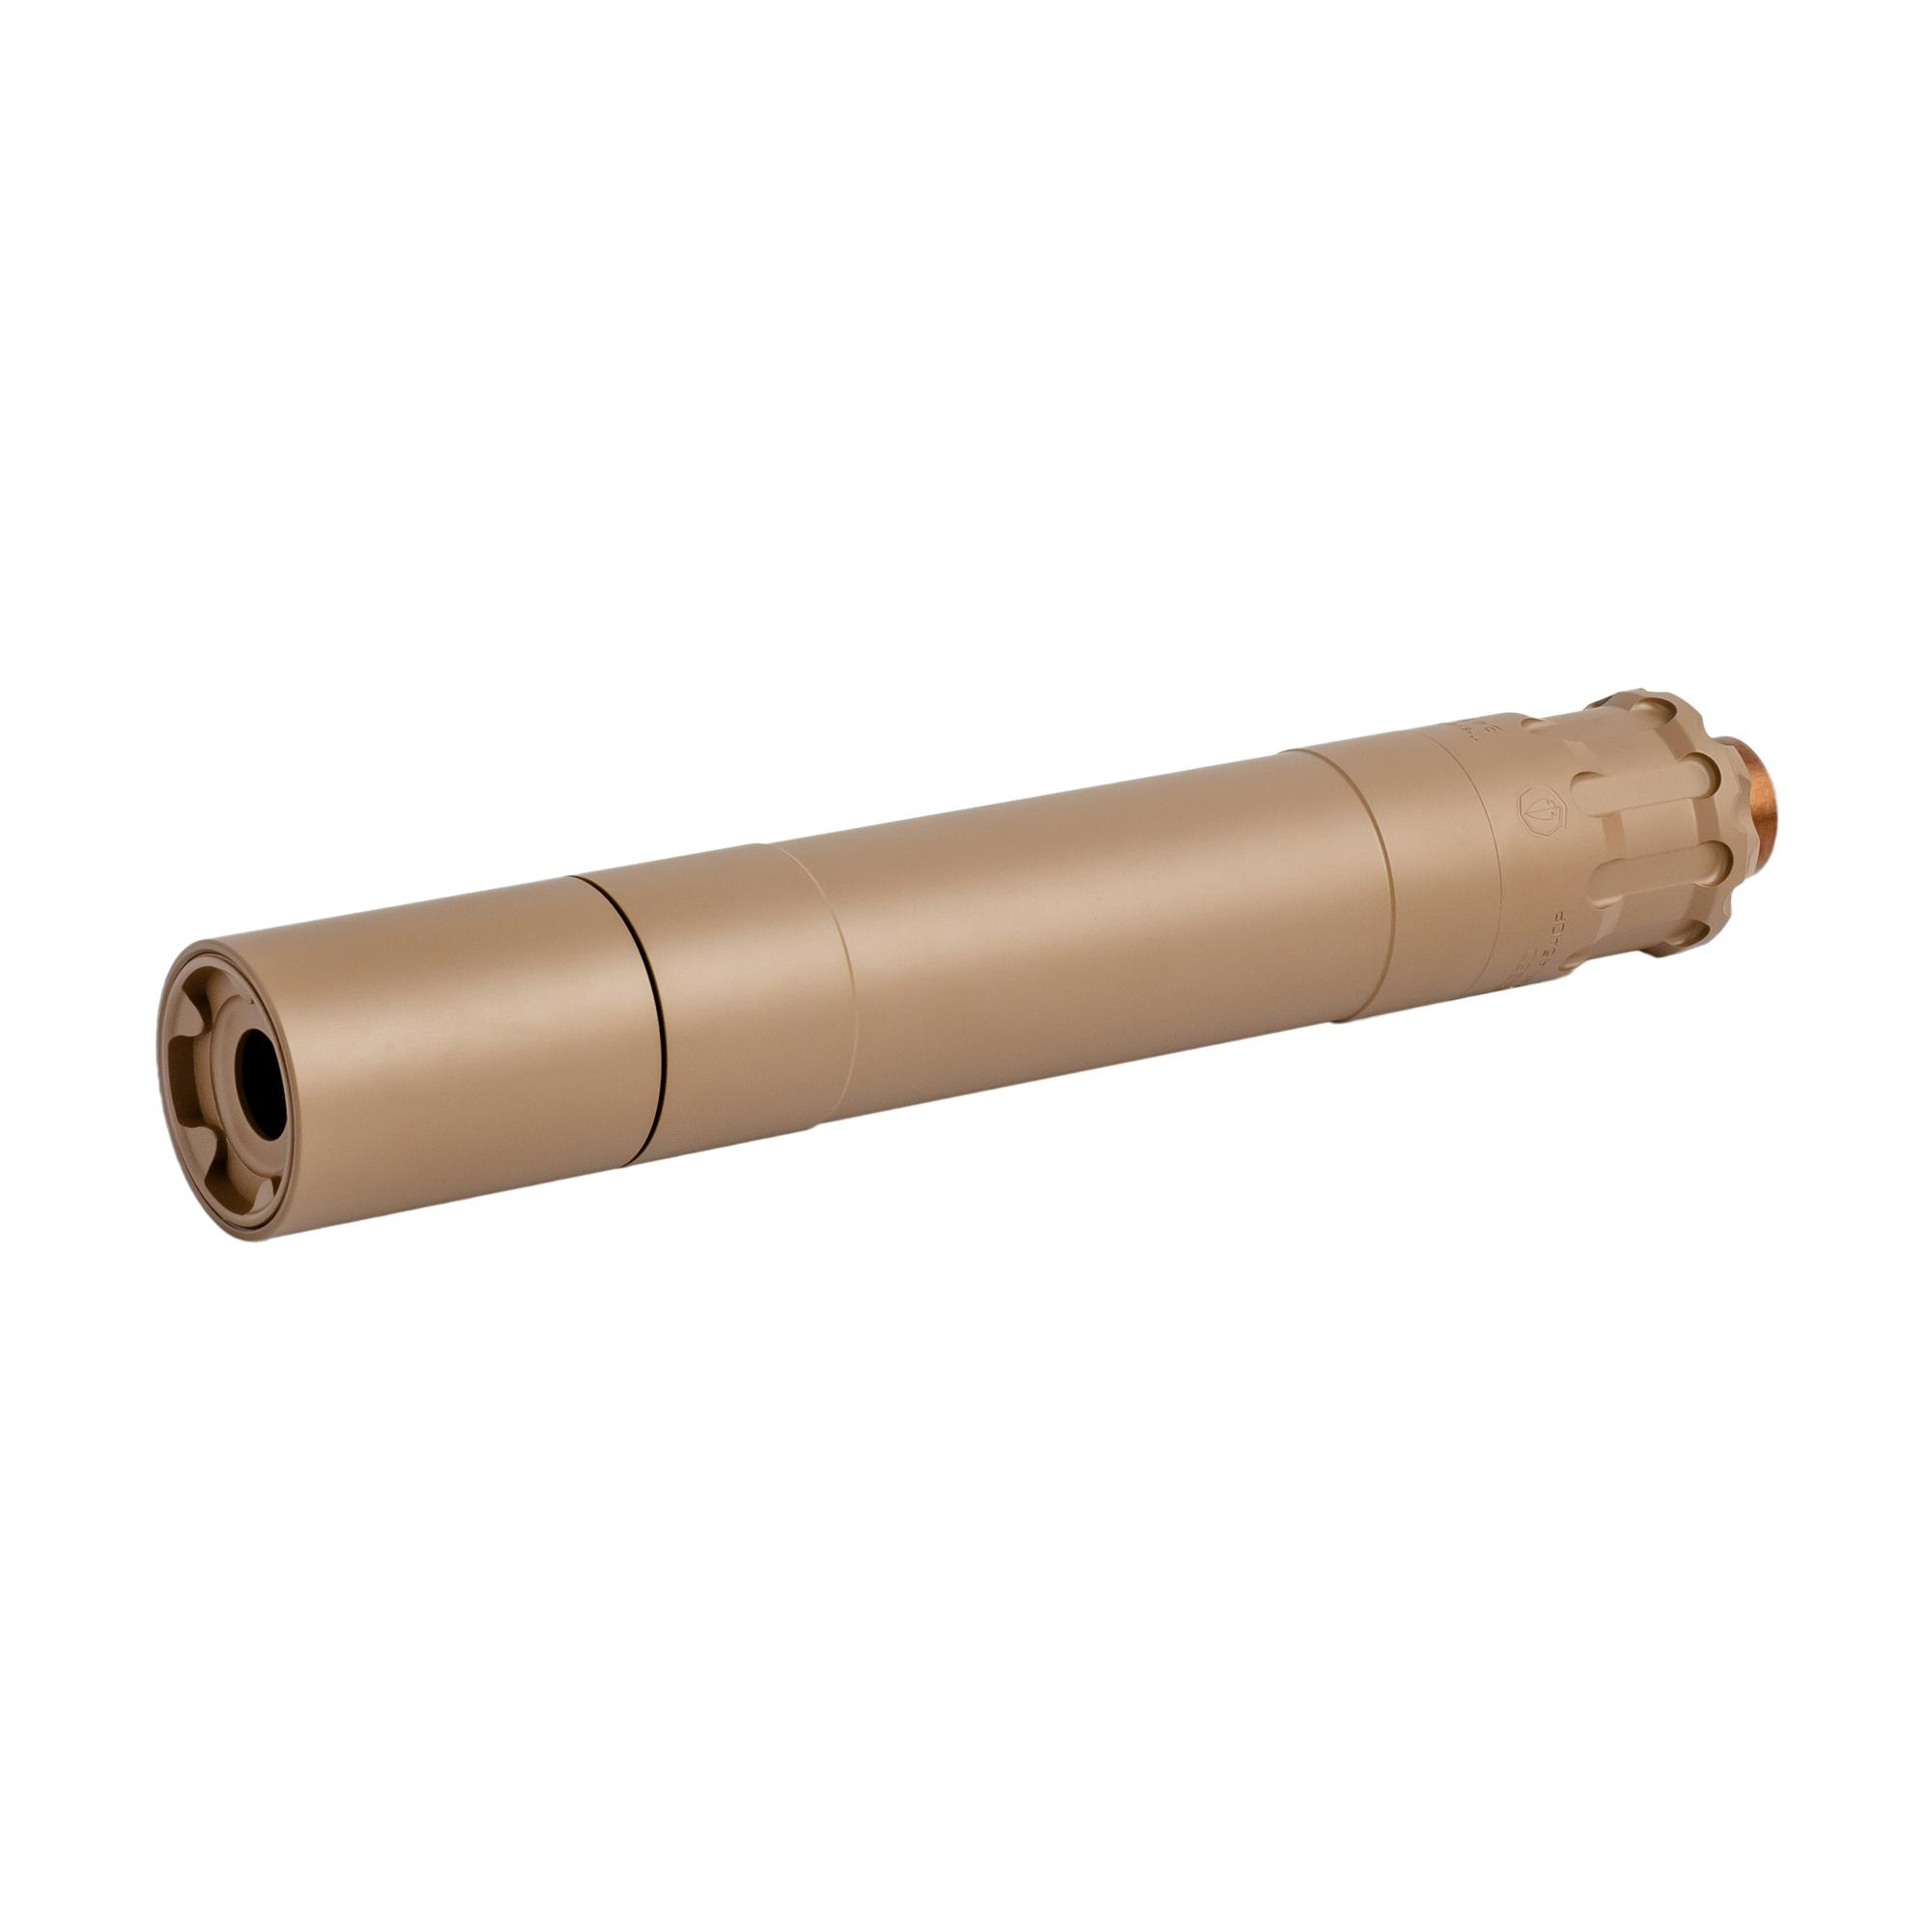 Rugged Obsidian 45 Suppressor Dark Earth